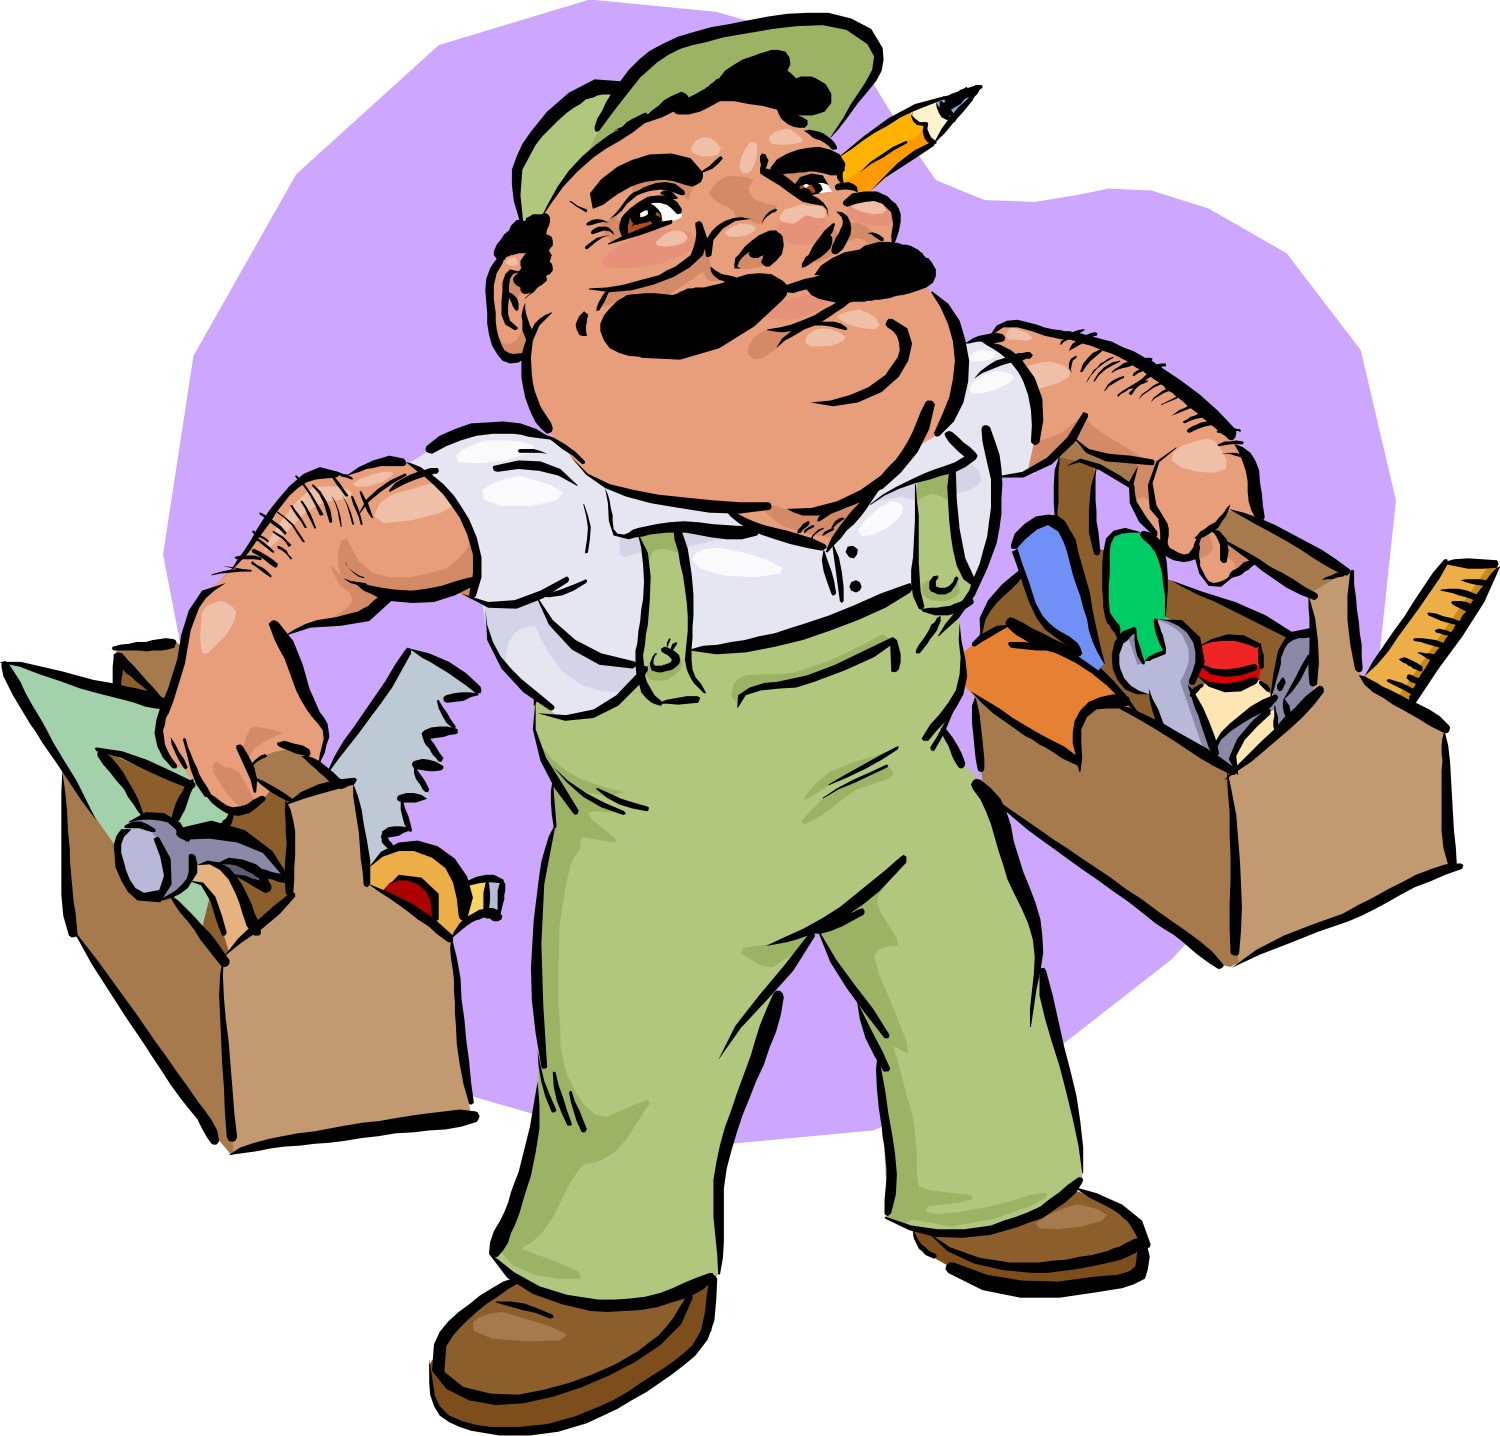 Maintenance man clipart image stock Maintenance man clipart 5 » Clipart Station image stock